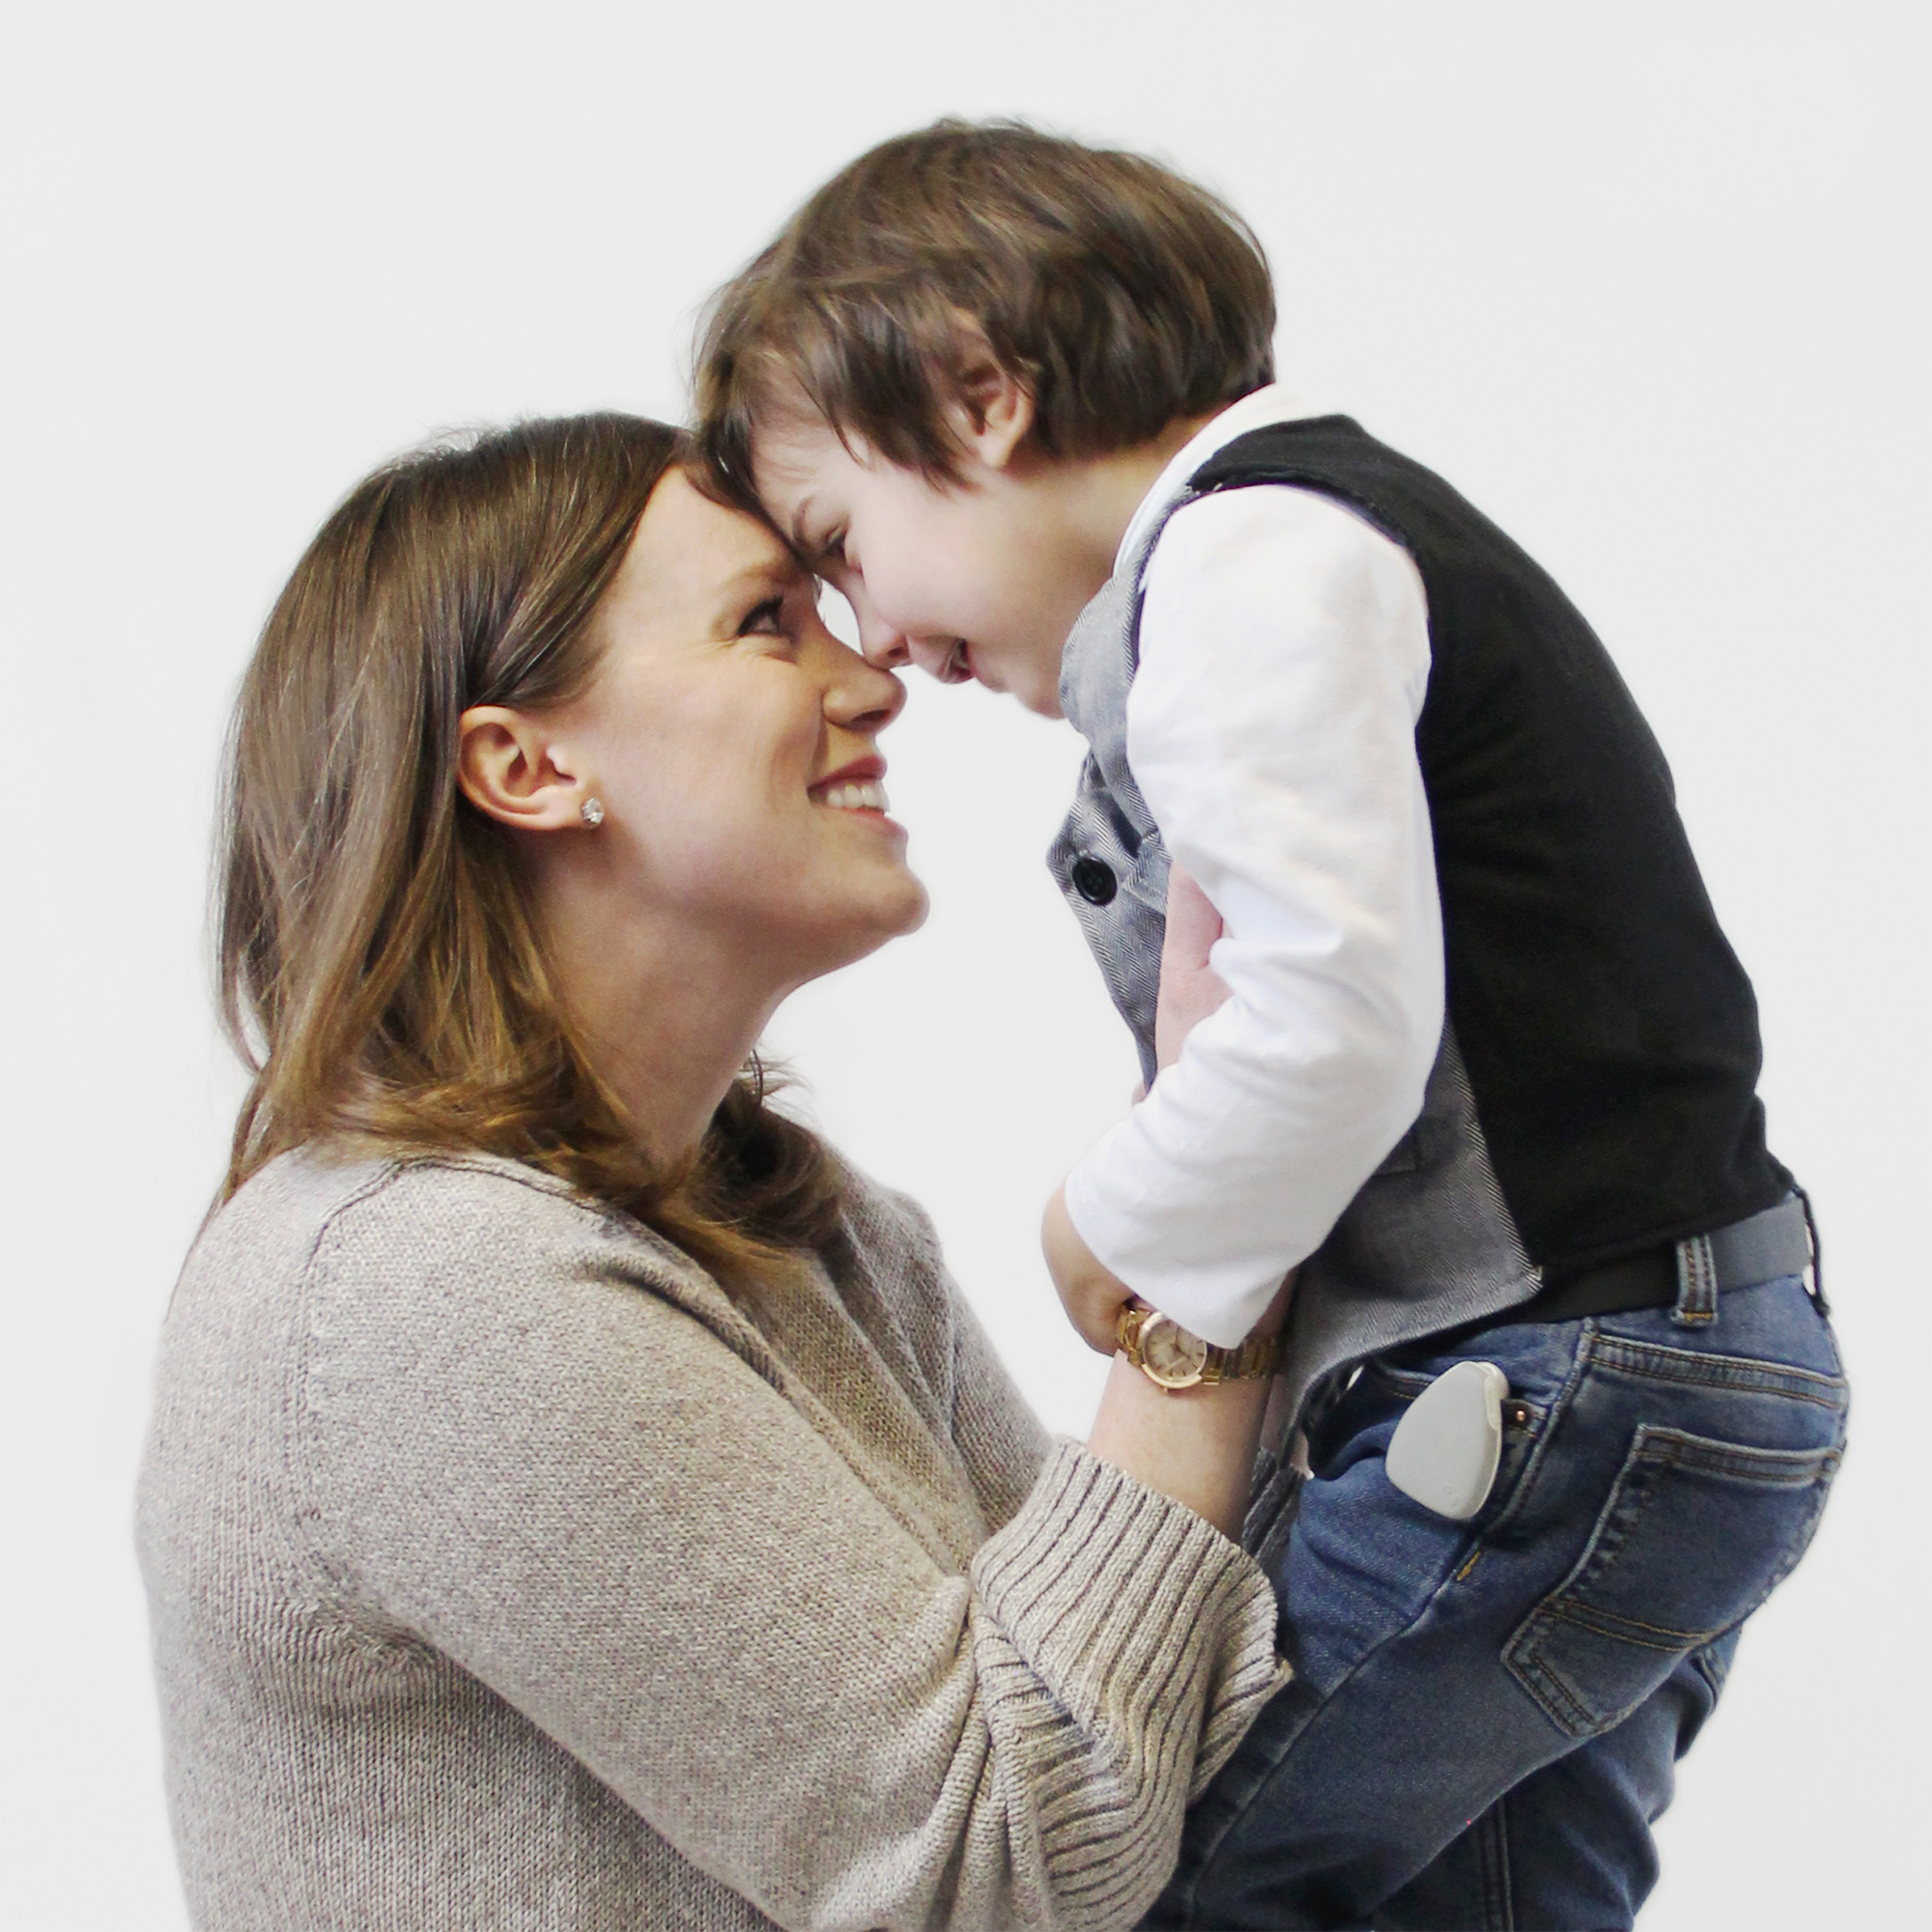 Jiobit-Location-Monitor - Moms will never fear losing their little ones again with tracking devices from Jiobit.